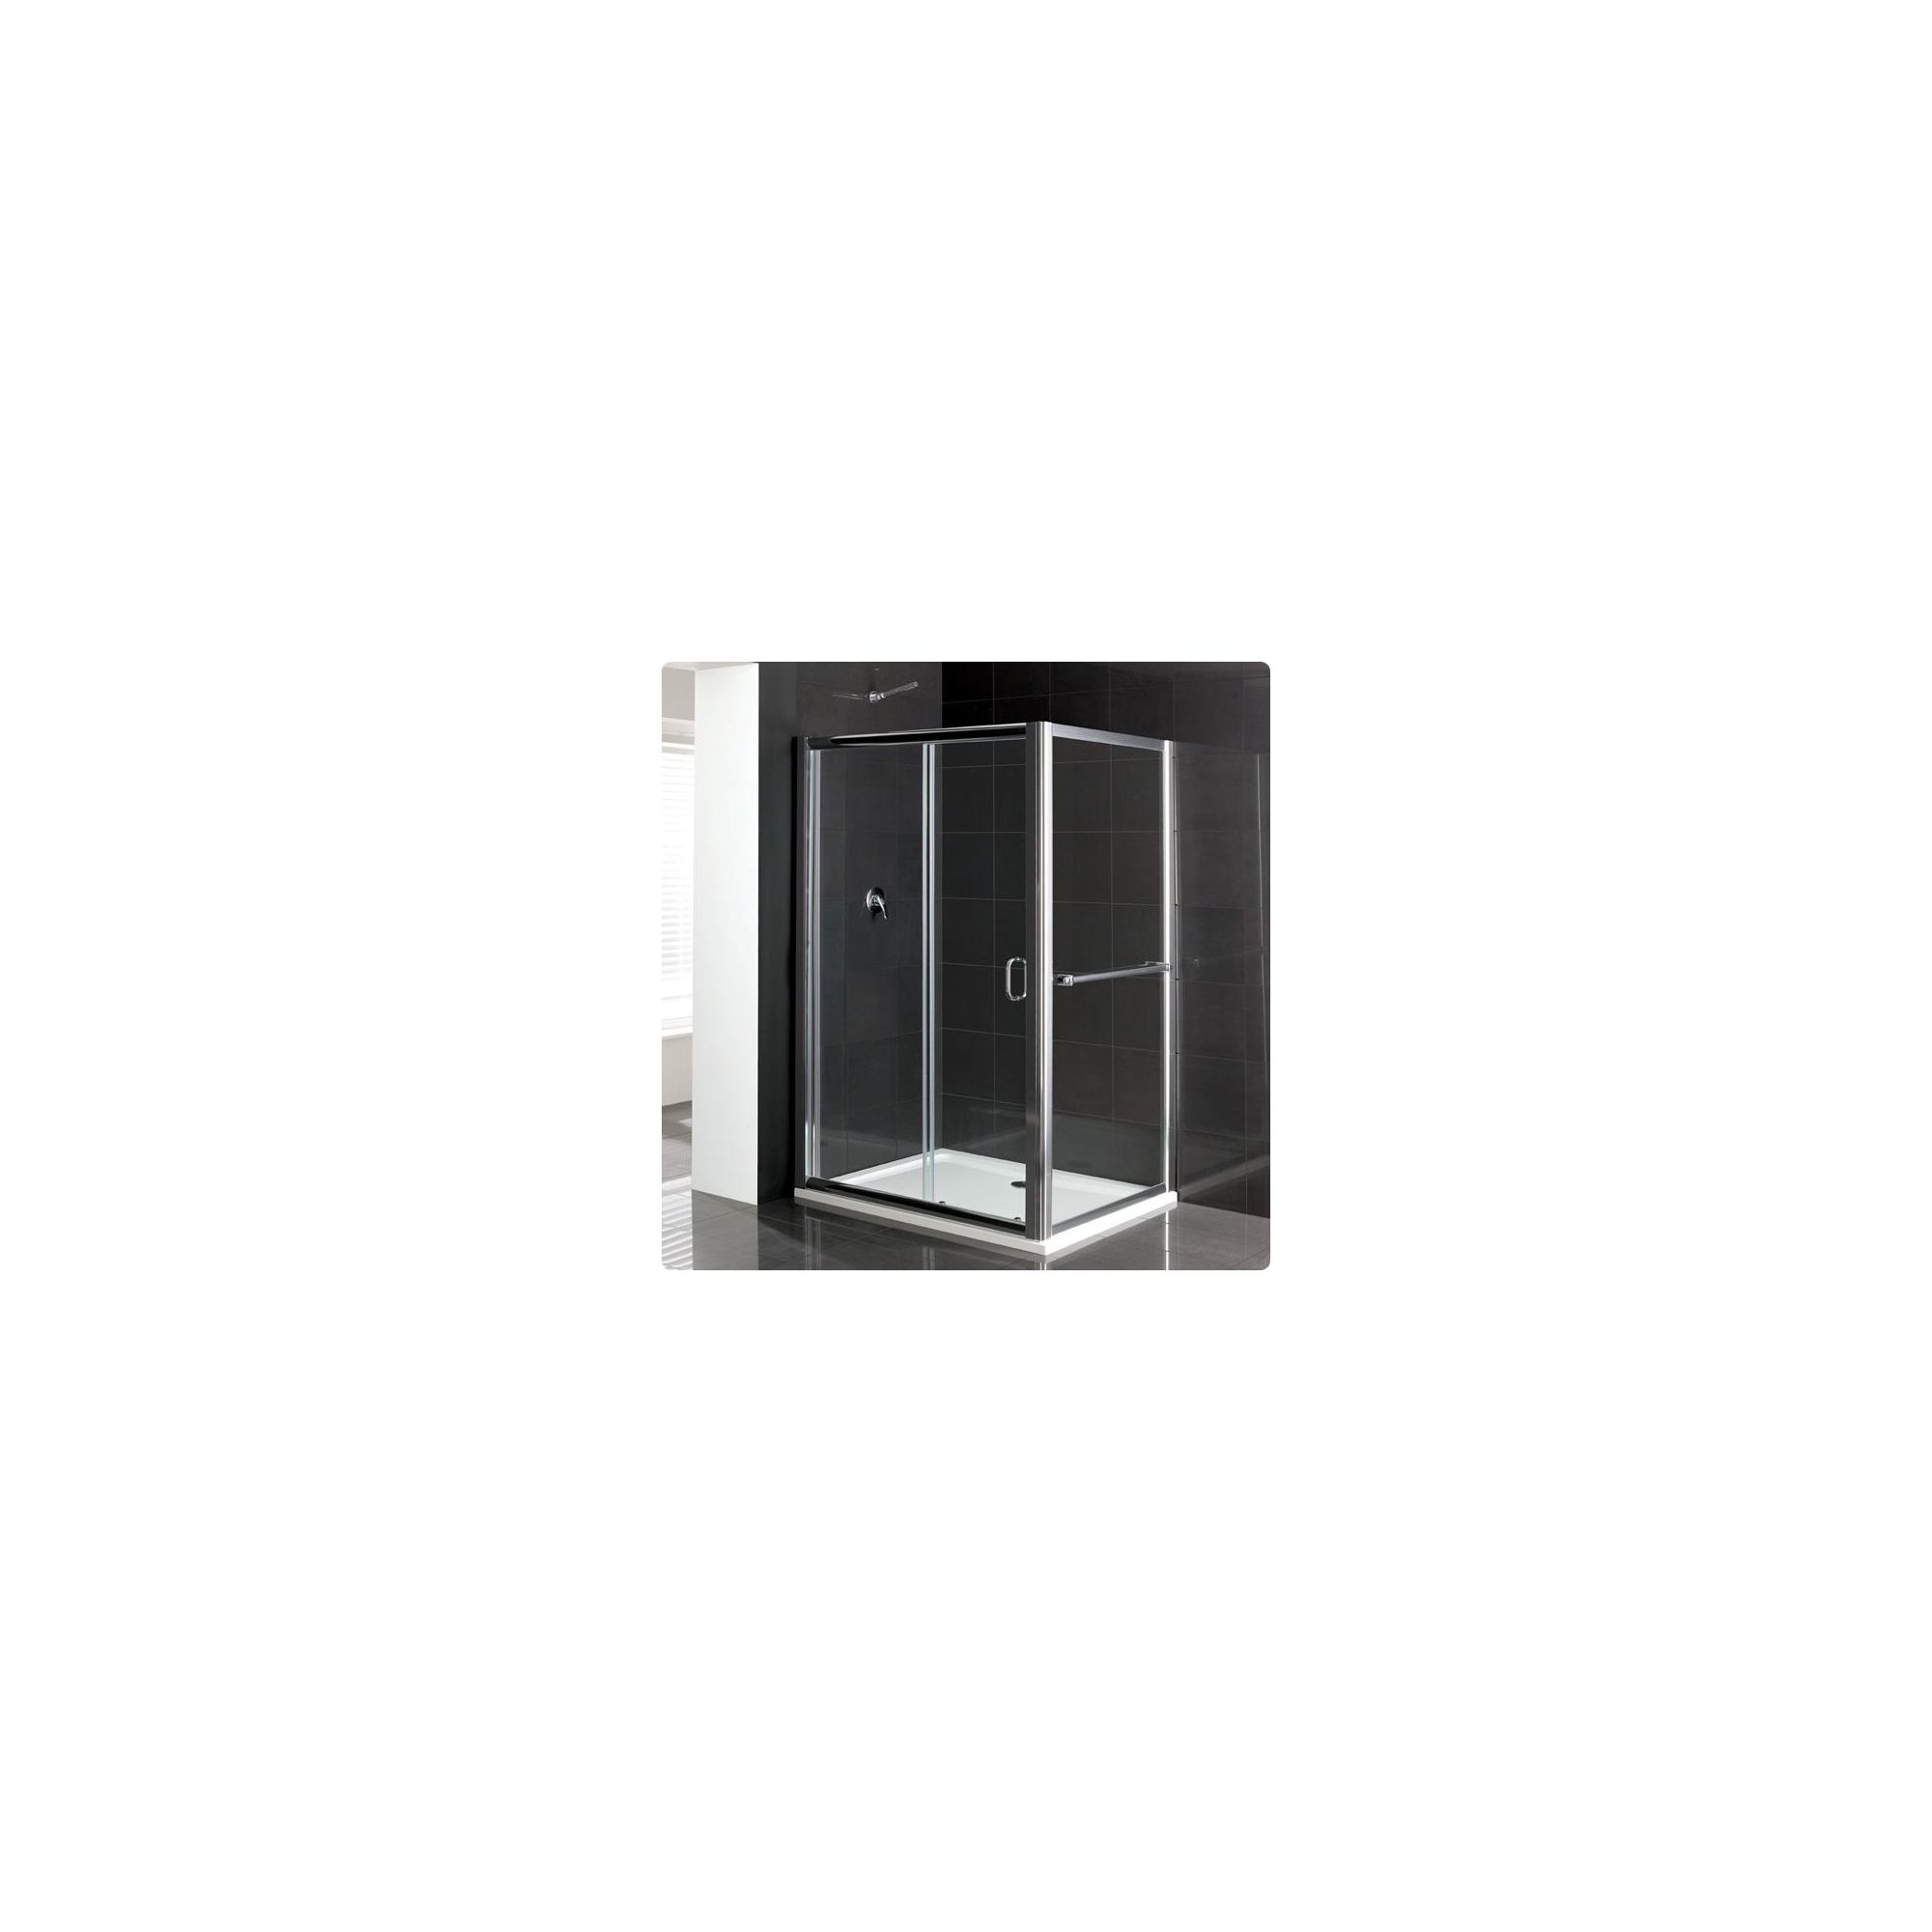 Duchy Elite Silver Sliding Door Shower Enclosure with Towel Rail, 1400mm x 700mm, Standard Tray, 6mm Glass at Tescos Direct